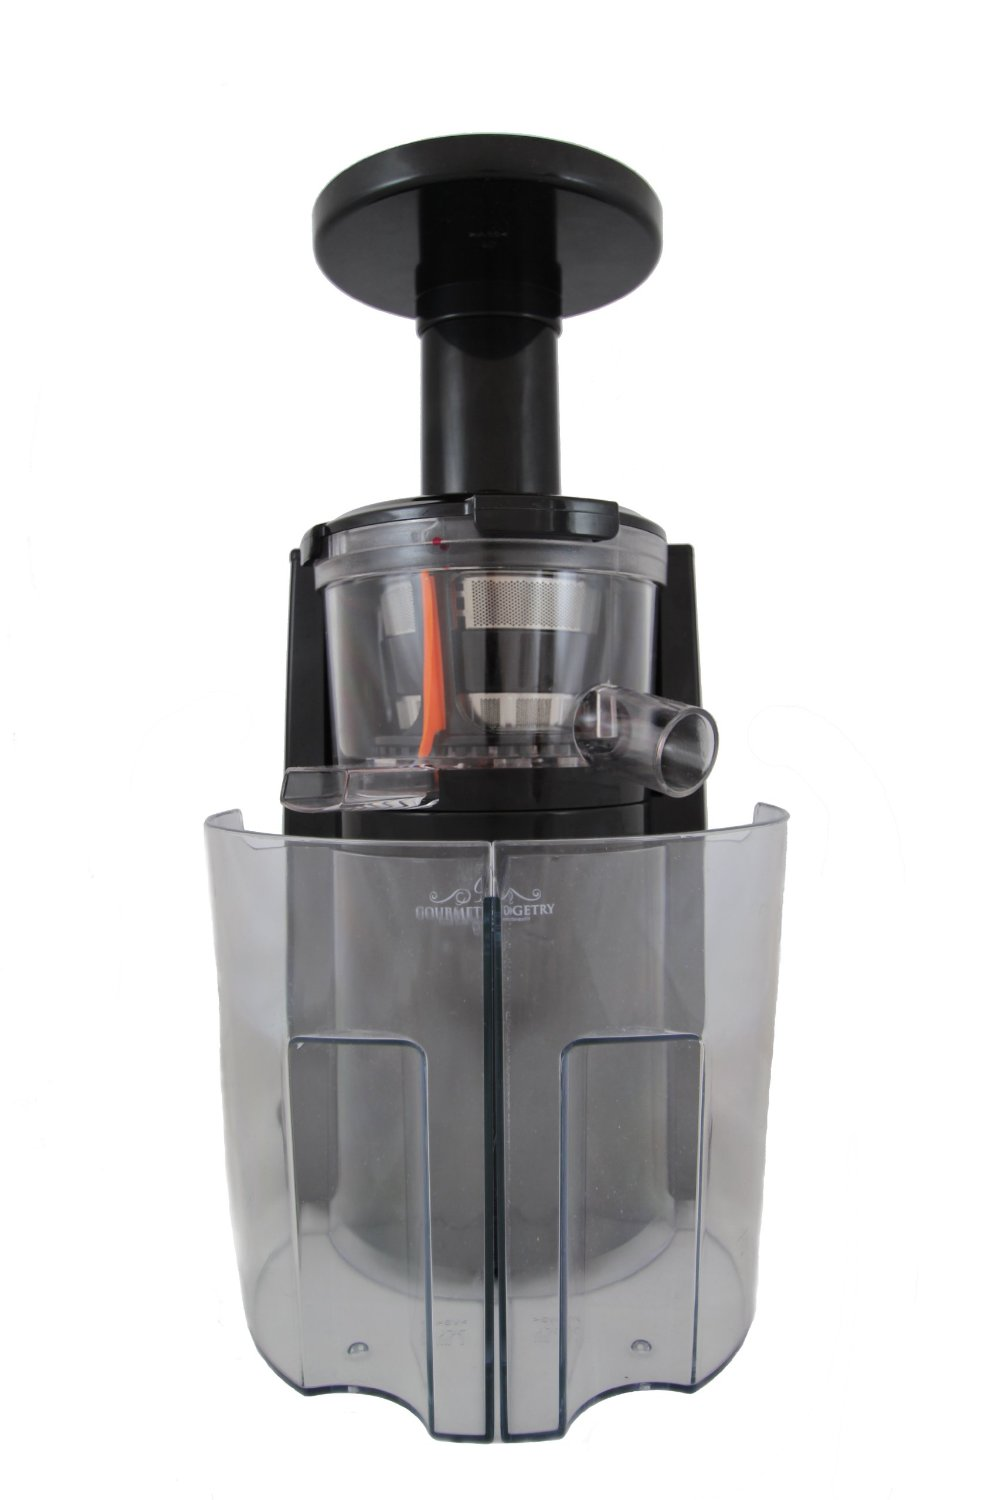 Slow Juicer For Hard Vegetables : Gourmet Gadgetry Professional Slow Juicer Whole Fruit vegetables Leafy Greens